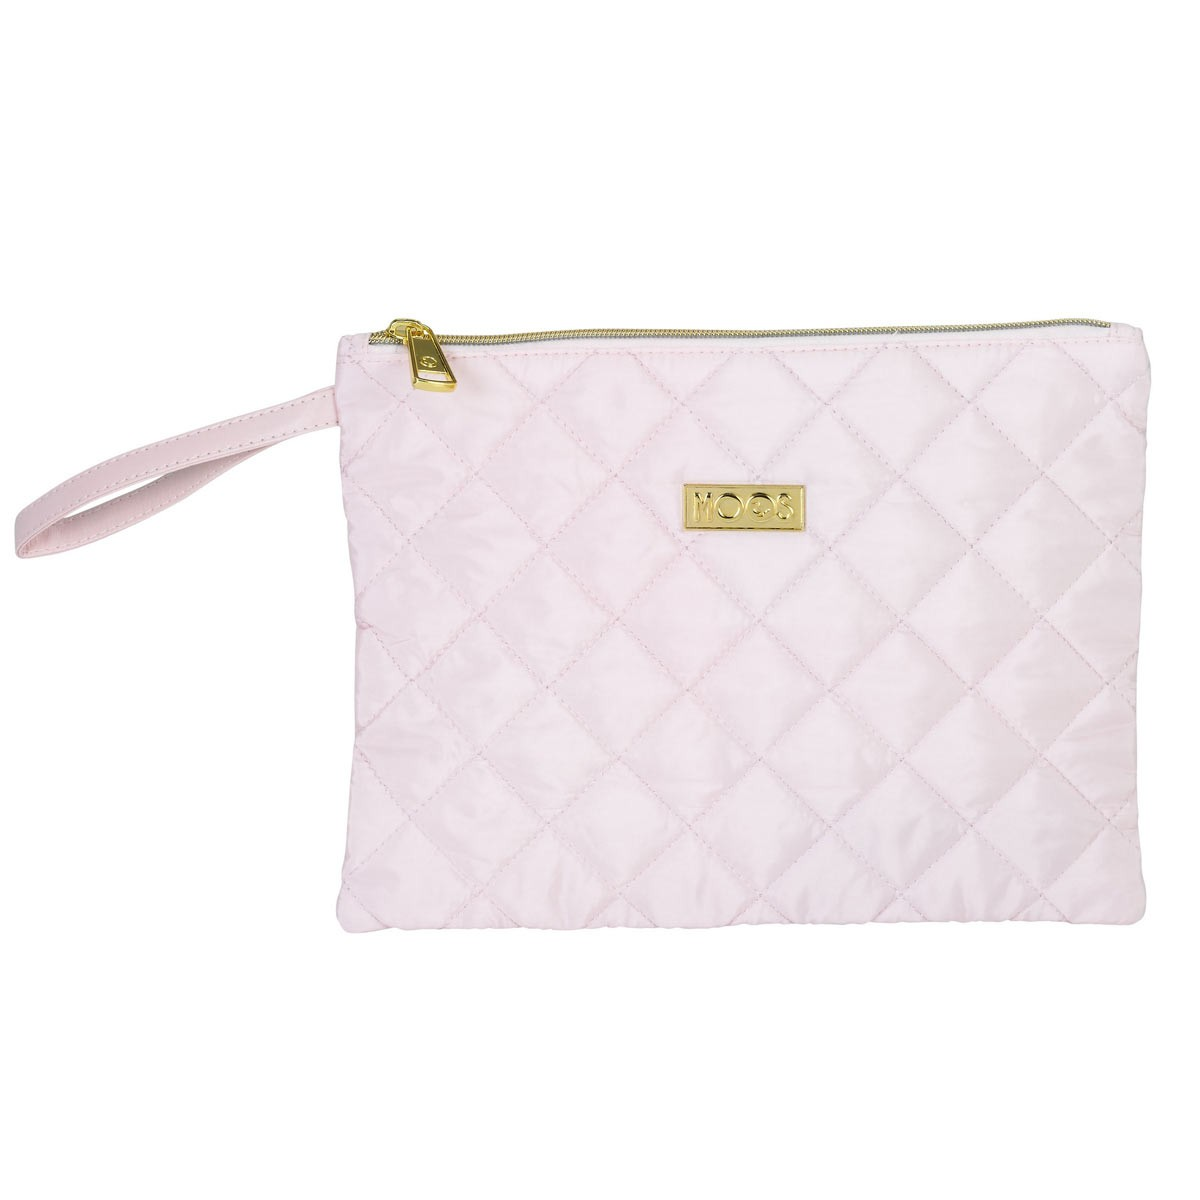 Moos Pink Quilted Deluxe Carry On Cosmetic Bag